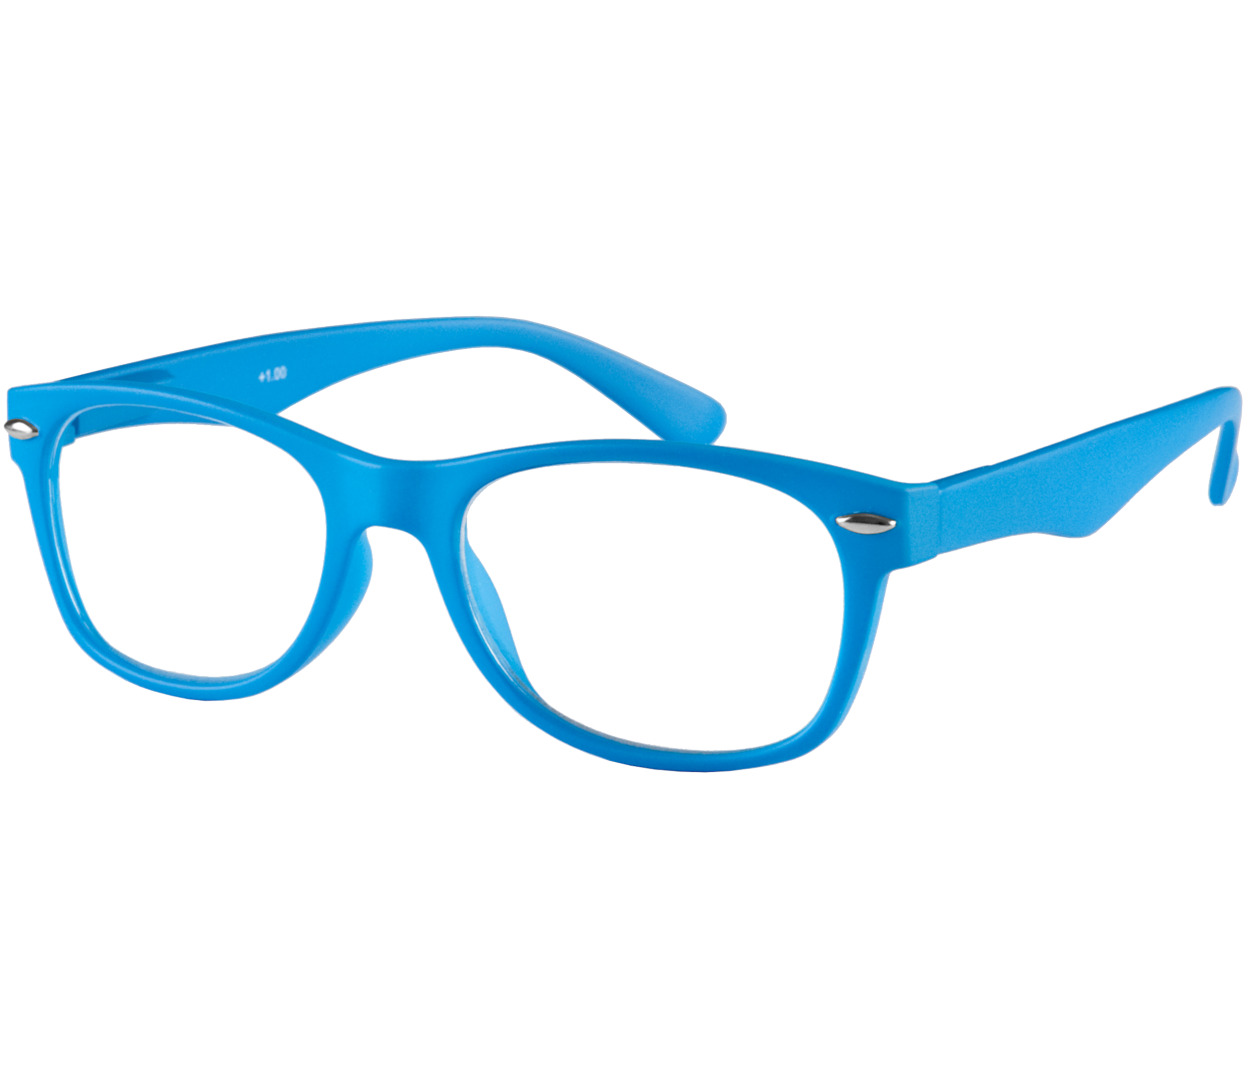 Main Image (Angle) - Harper (Blue) Retro Reading Glasses